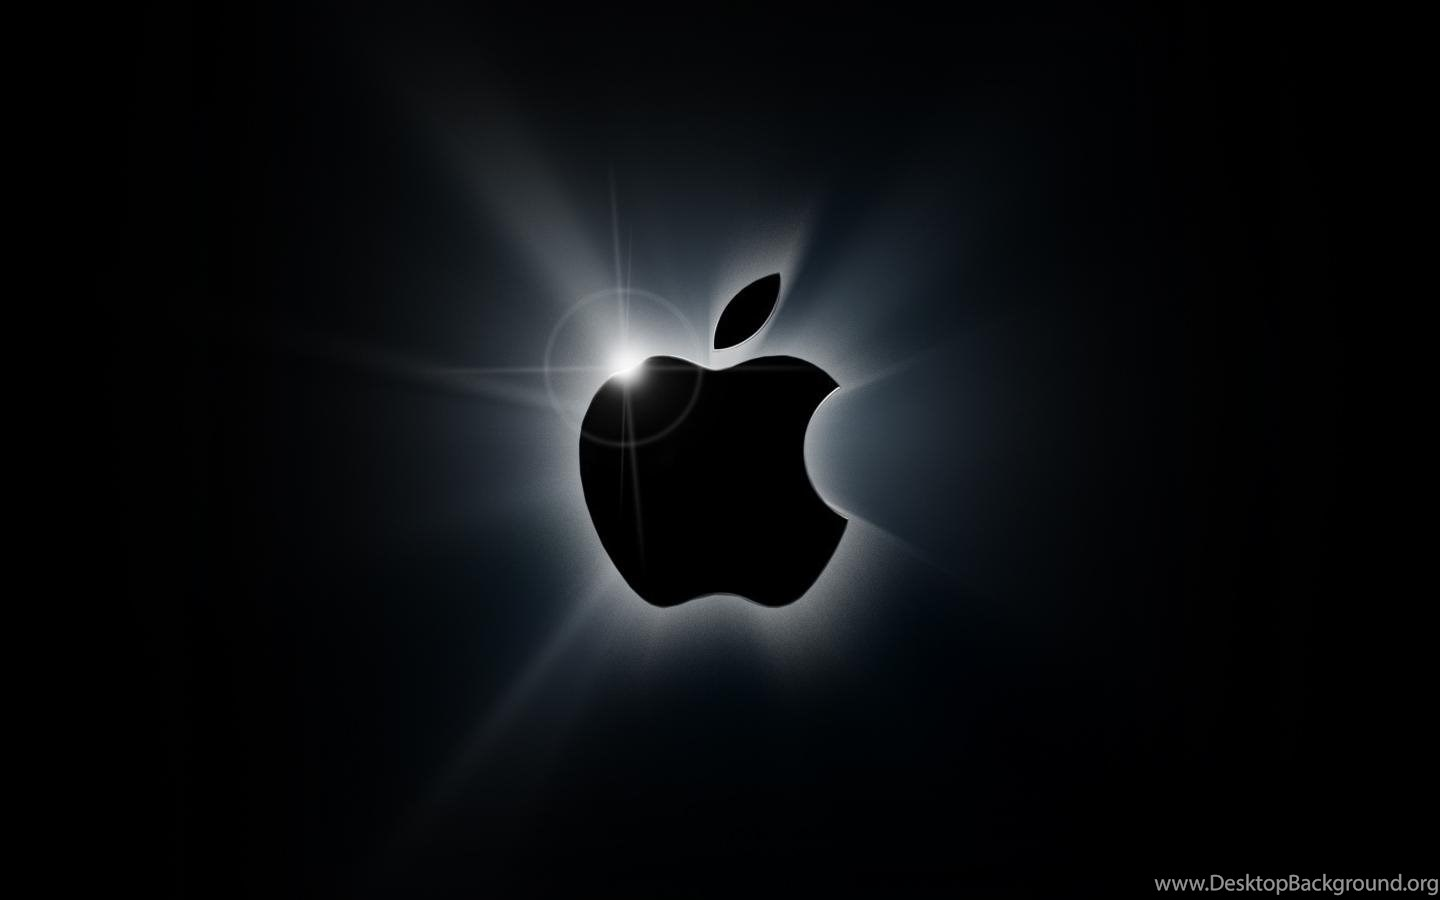 apple laptop 3d logo hd wallpapers desktop background